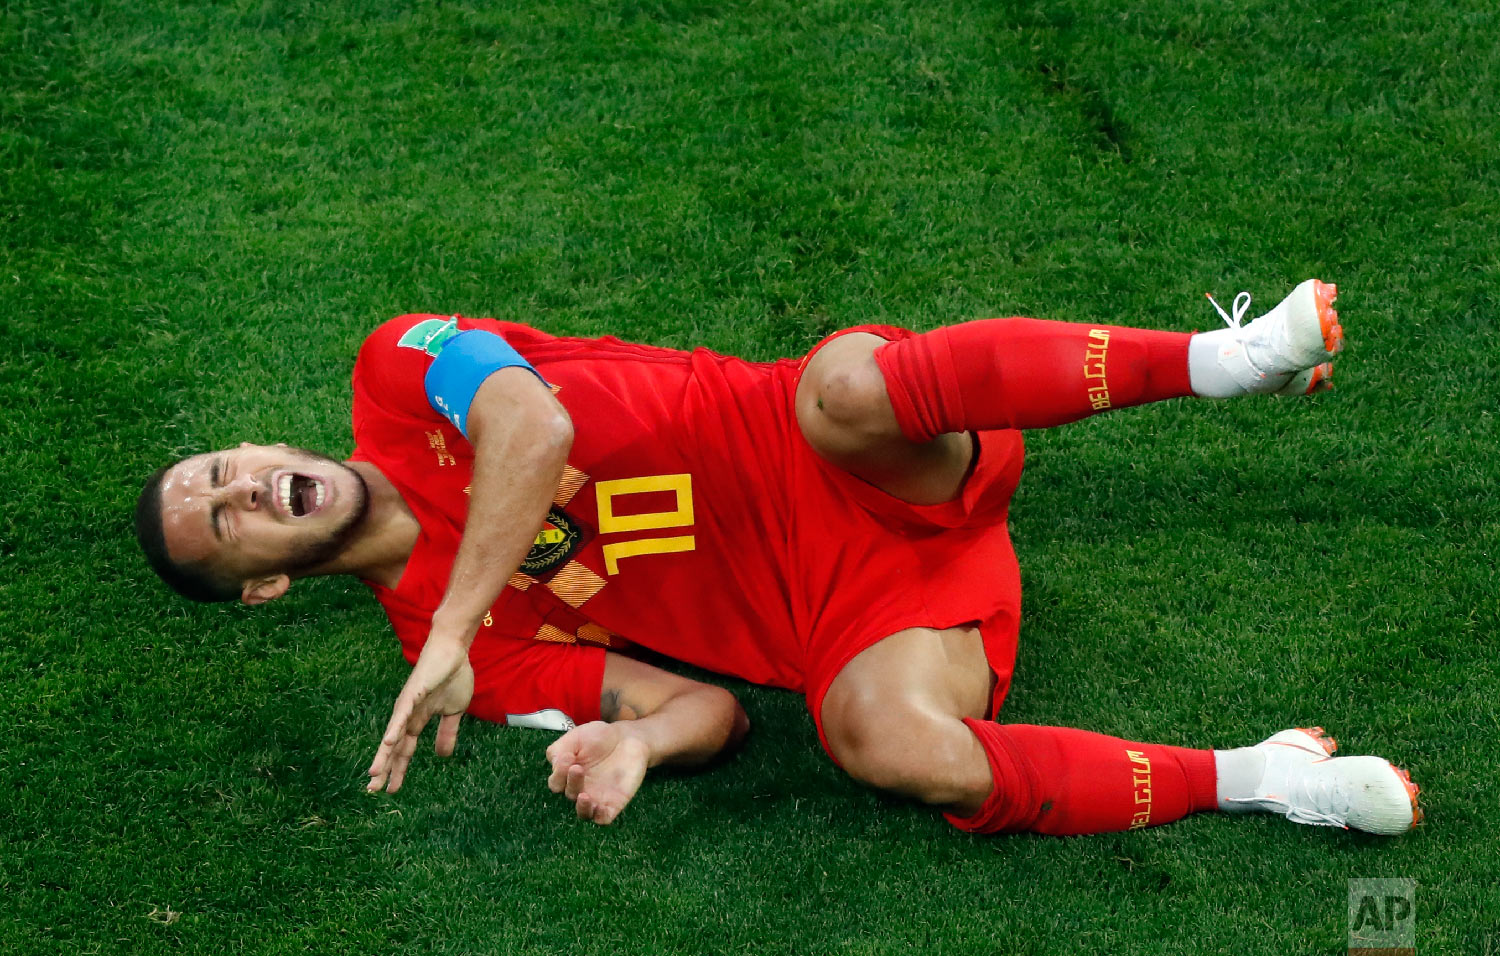 Belgium's Eden Hazard reacts during the semifinal match between France and Belgium at the 2018 soccer World Cup in the St. Petersburg Stadium in St. Petersburg, Russia, Tuesday, July 10, 2018. (AP Photo/Pavel Golovkin)